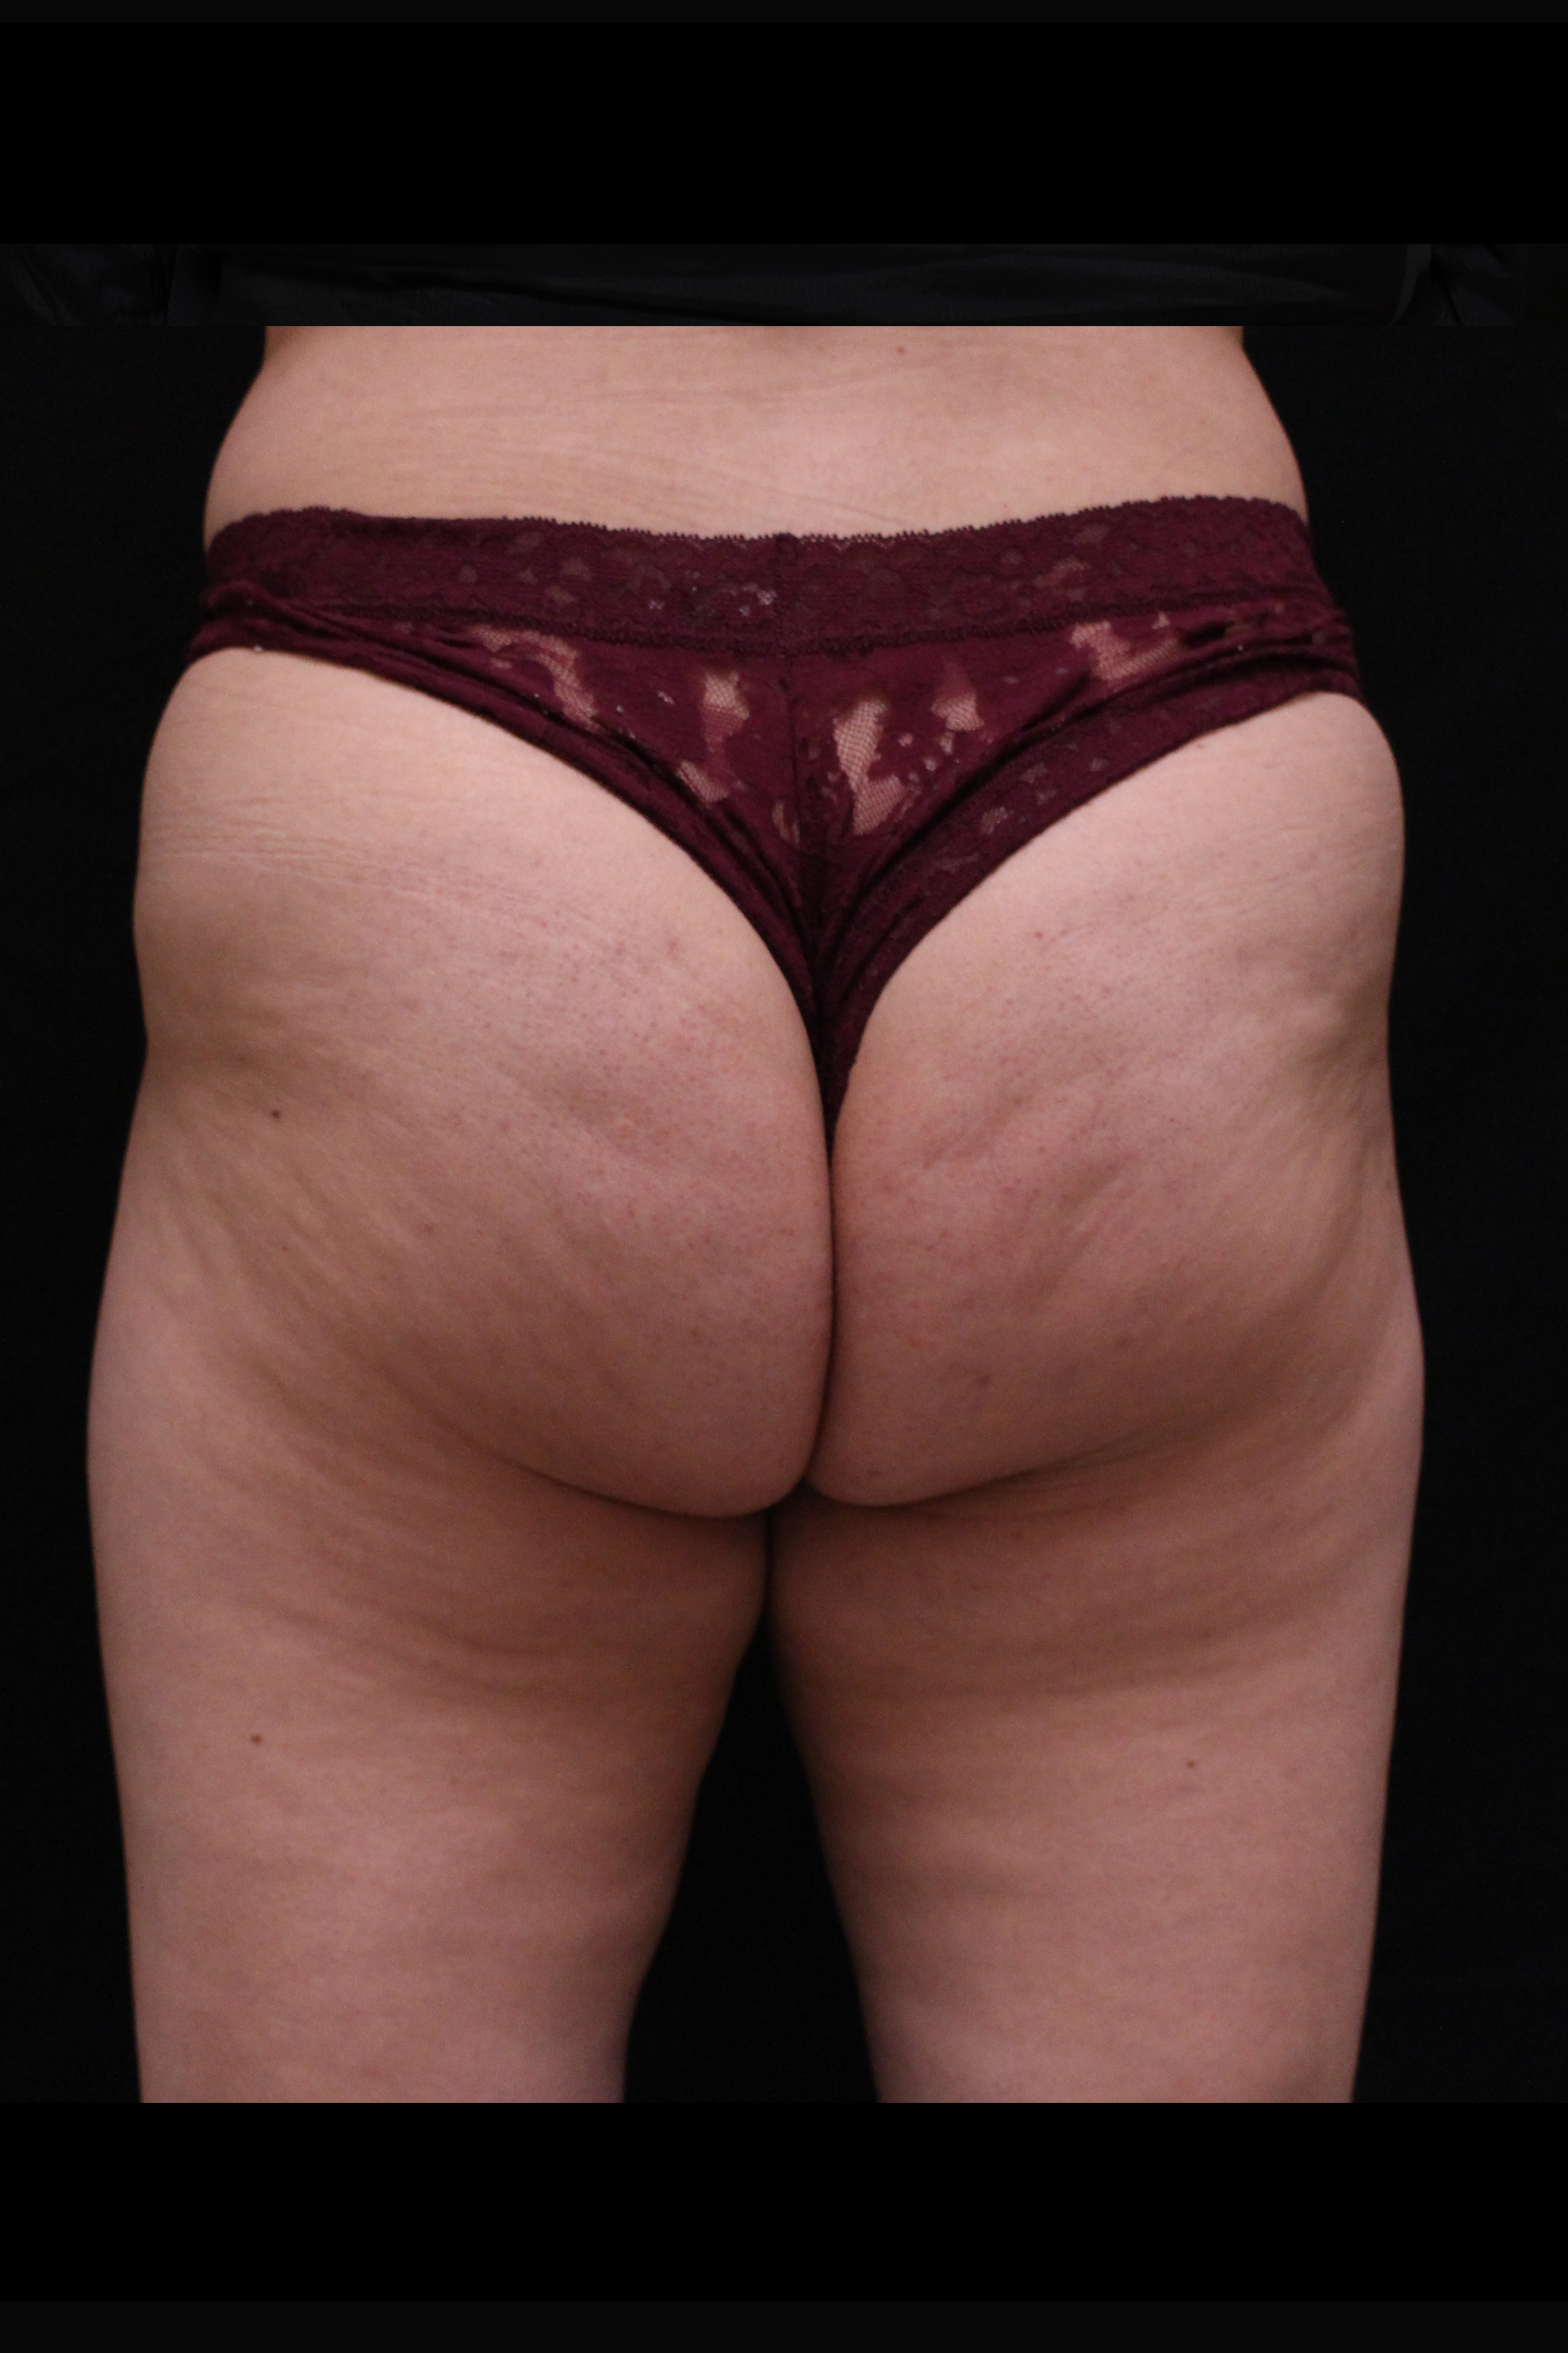 Before Cellulite Reduction - Qwo